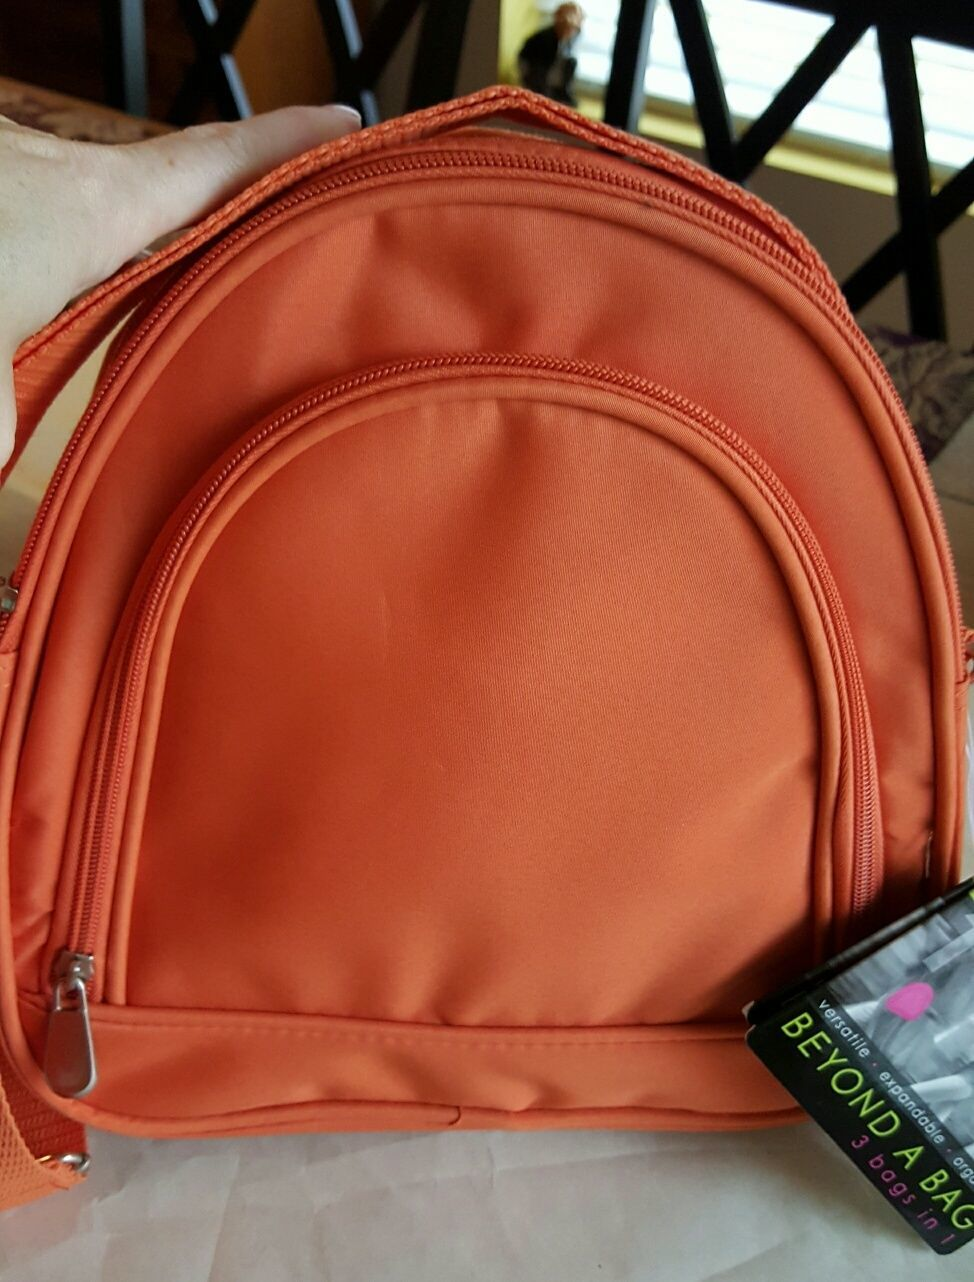 Beyond a Bag 3 Bags in One Backpack, Sling and Duffel Bag NWT image 6